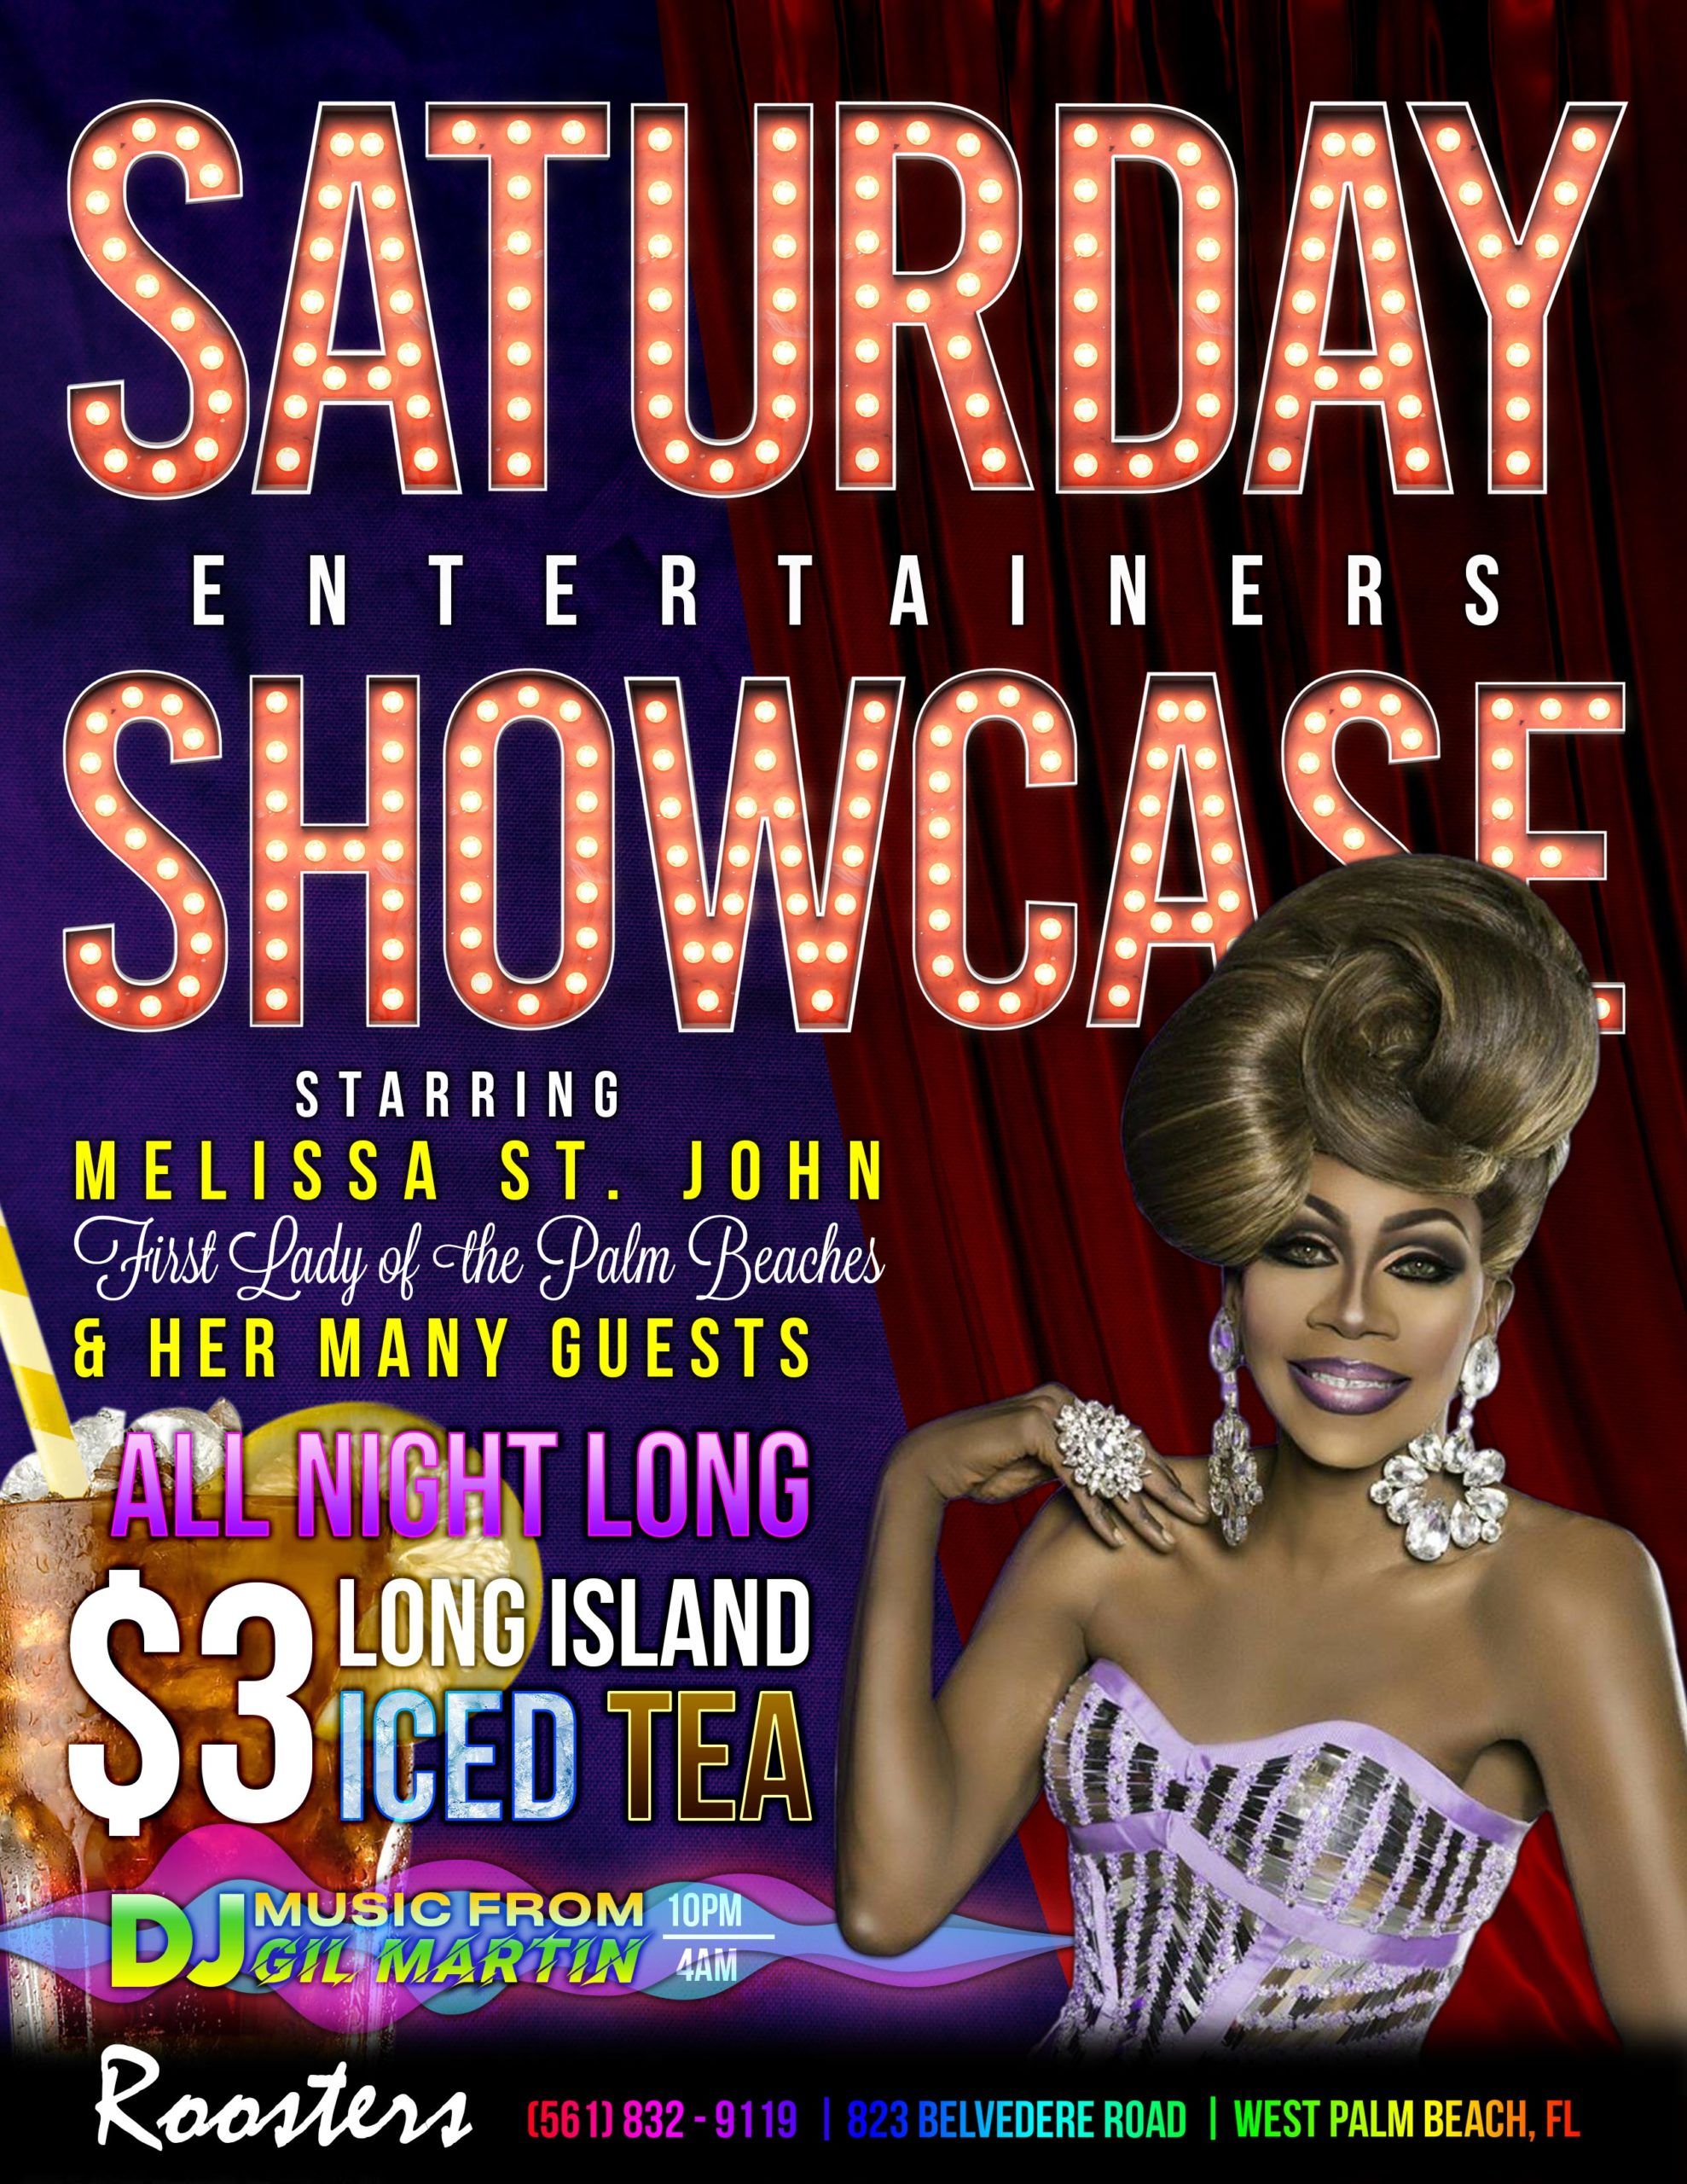 Melissa St. John Saturday Entertainers Showcase with $3 Long Island Iced Tea flyer